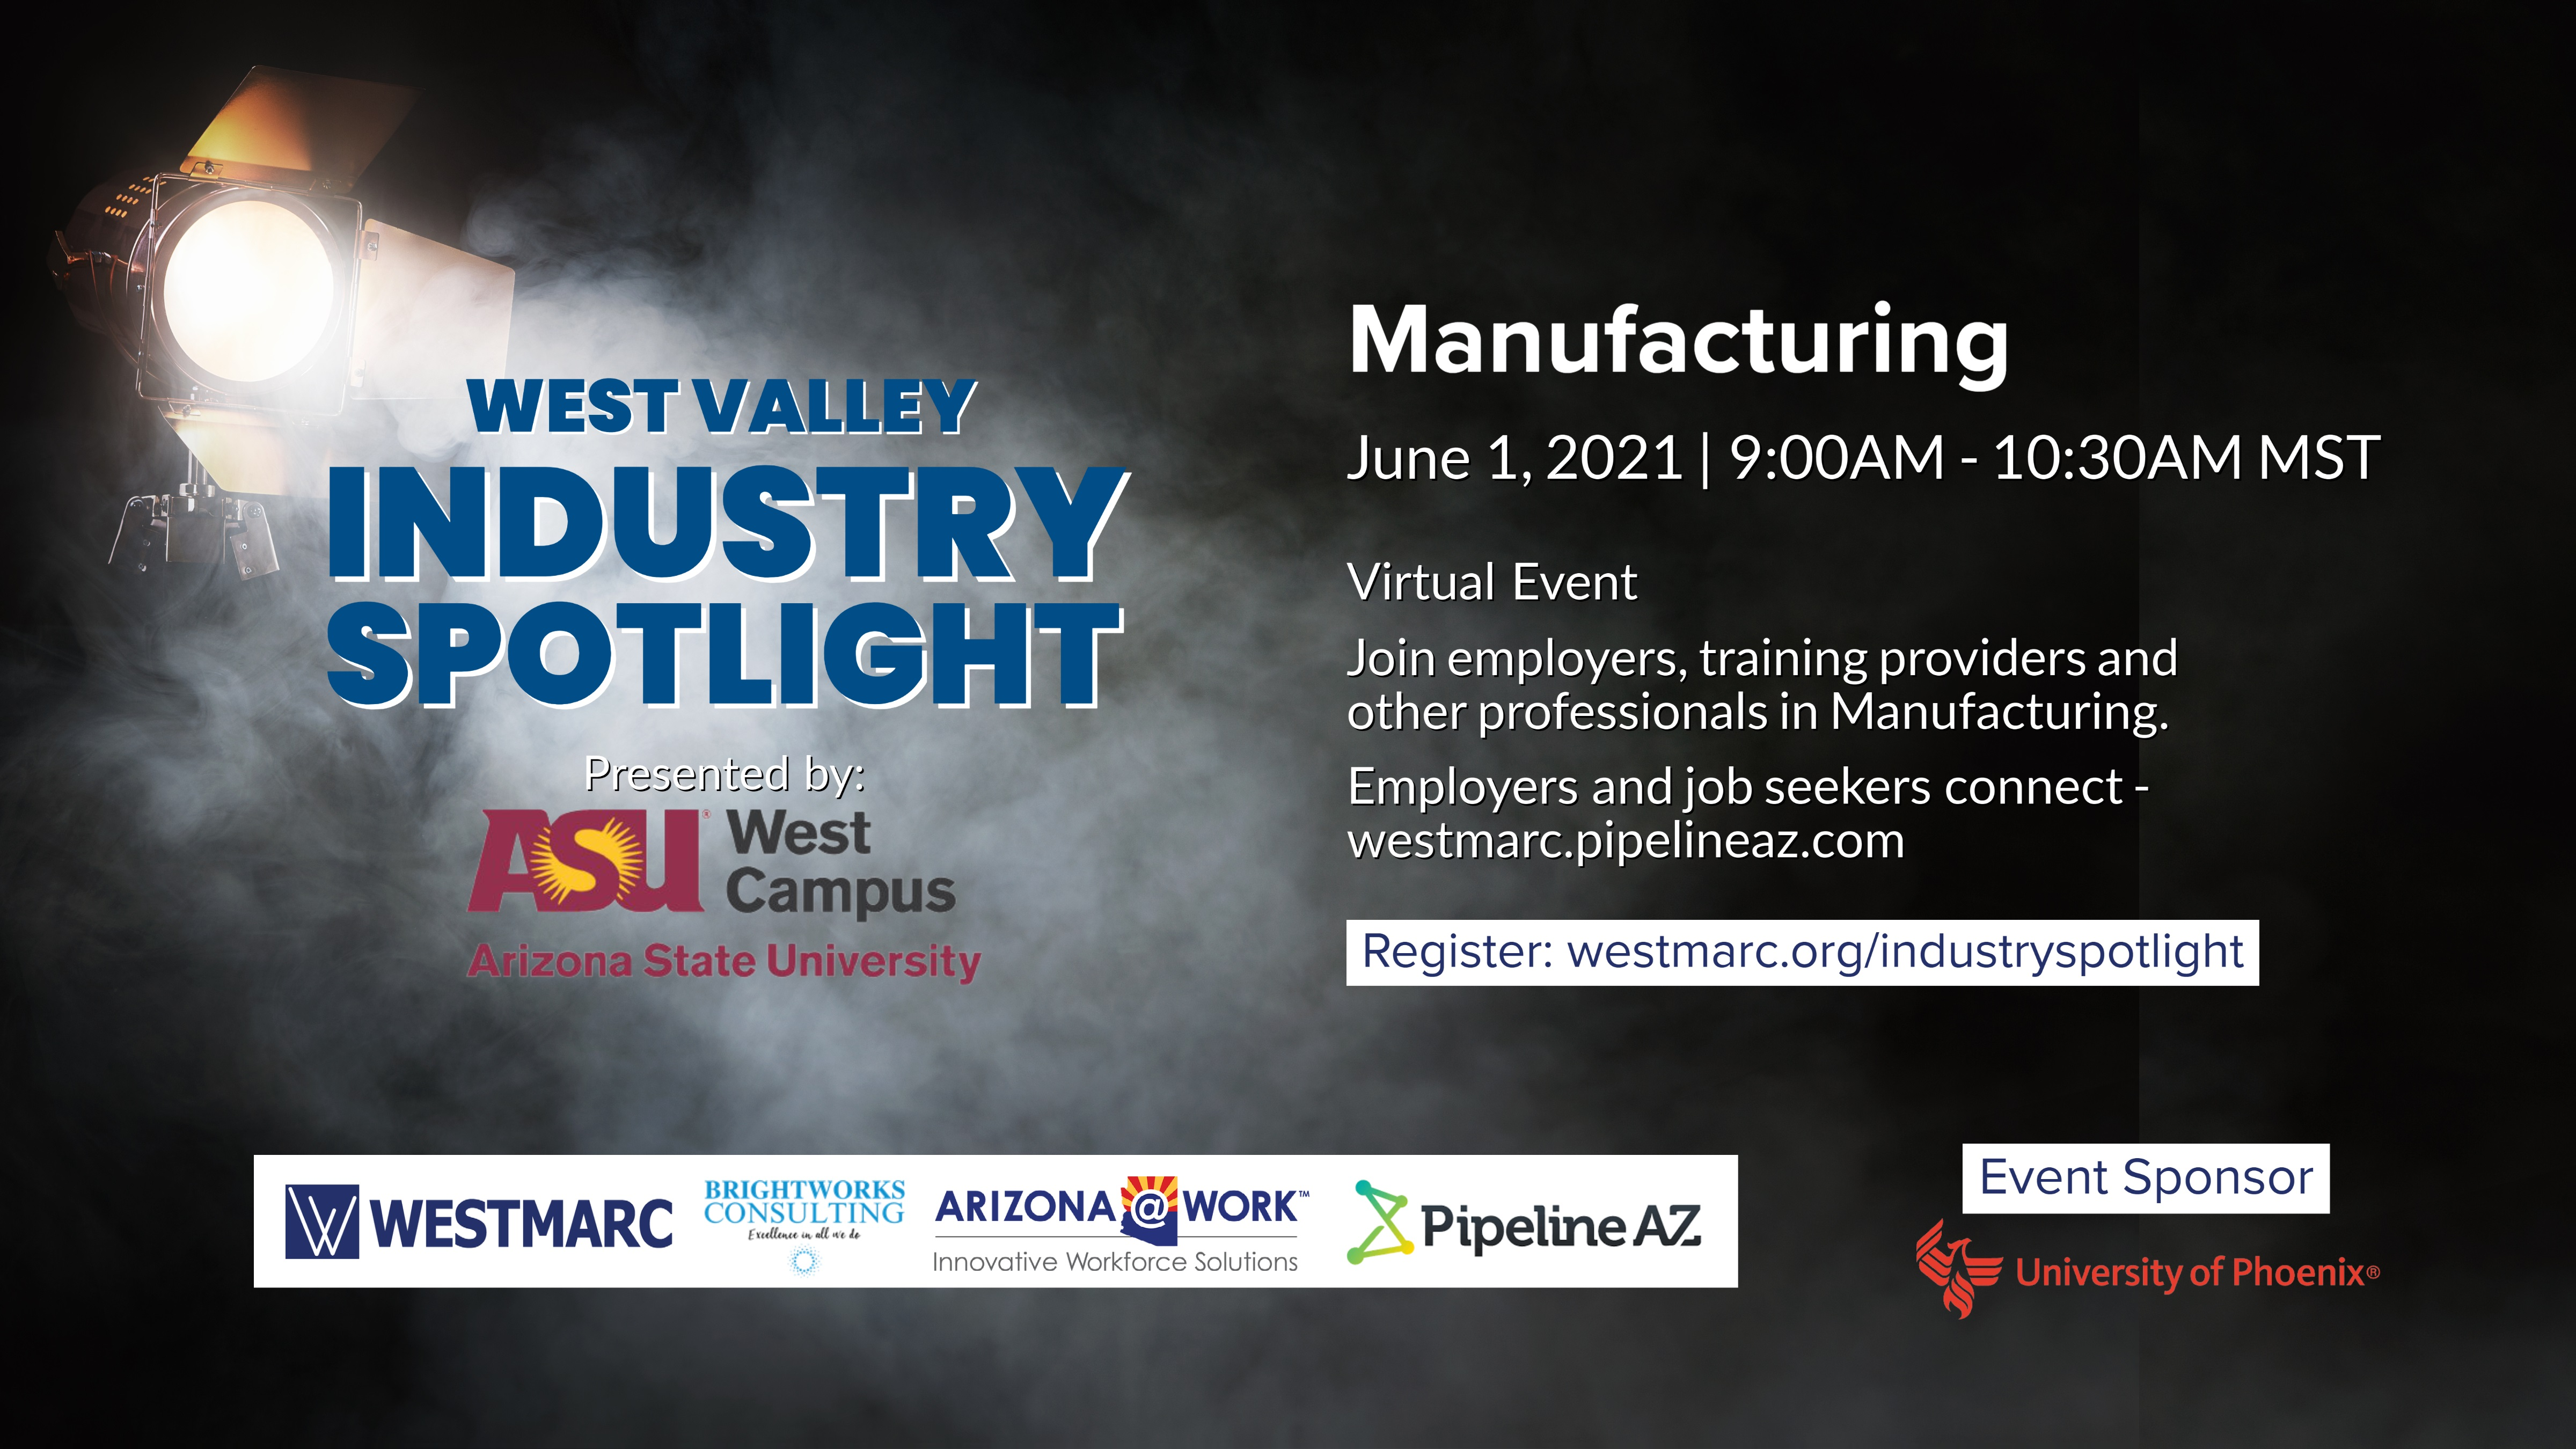 Join employers, training providers and other professionals in Manufacturing.